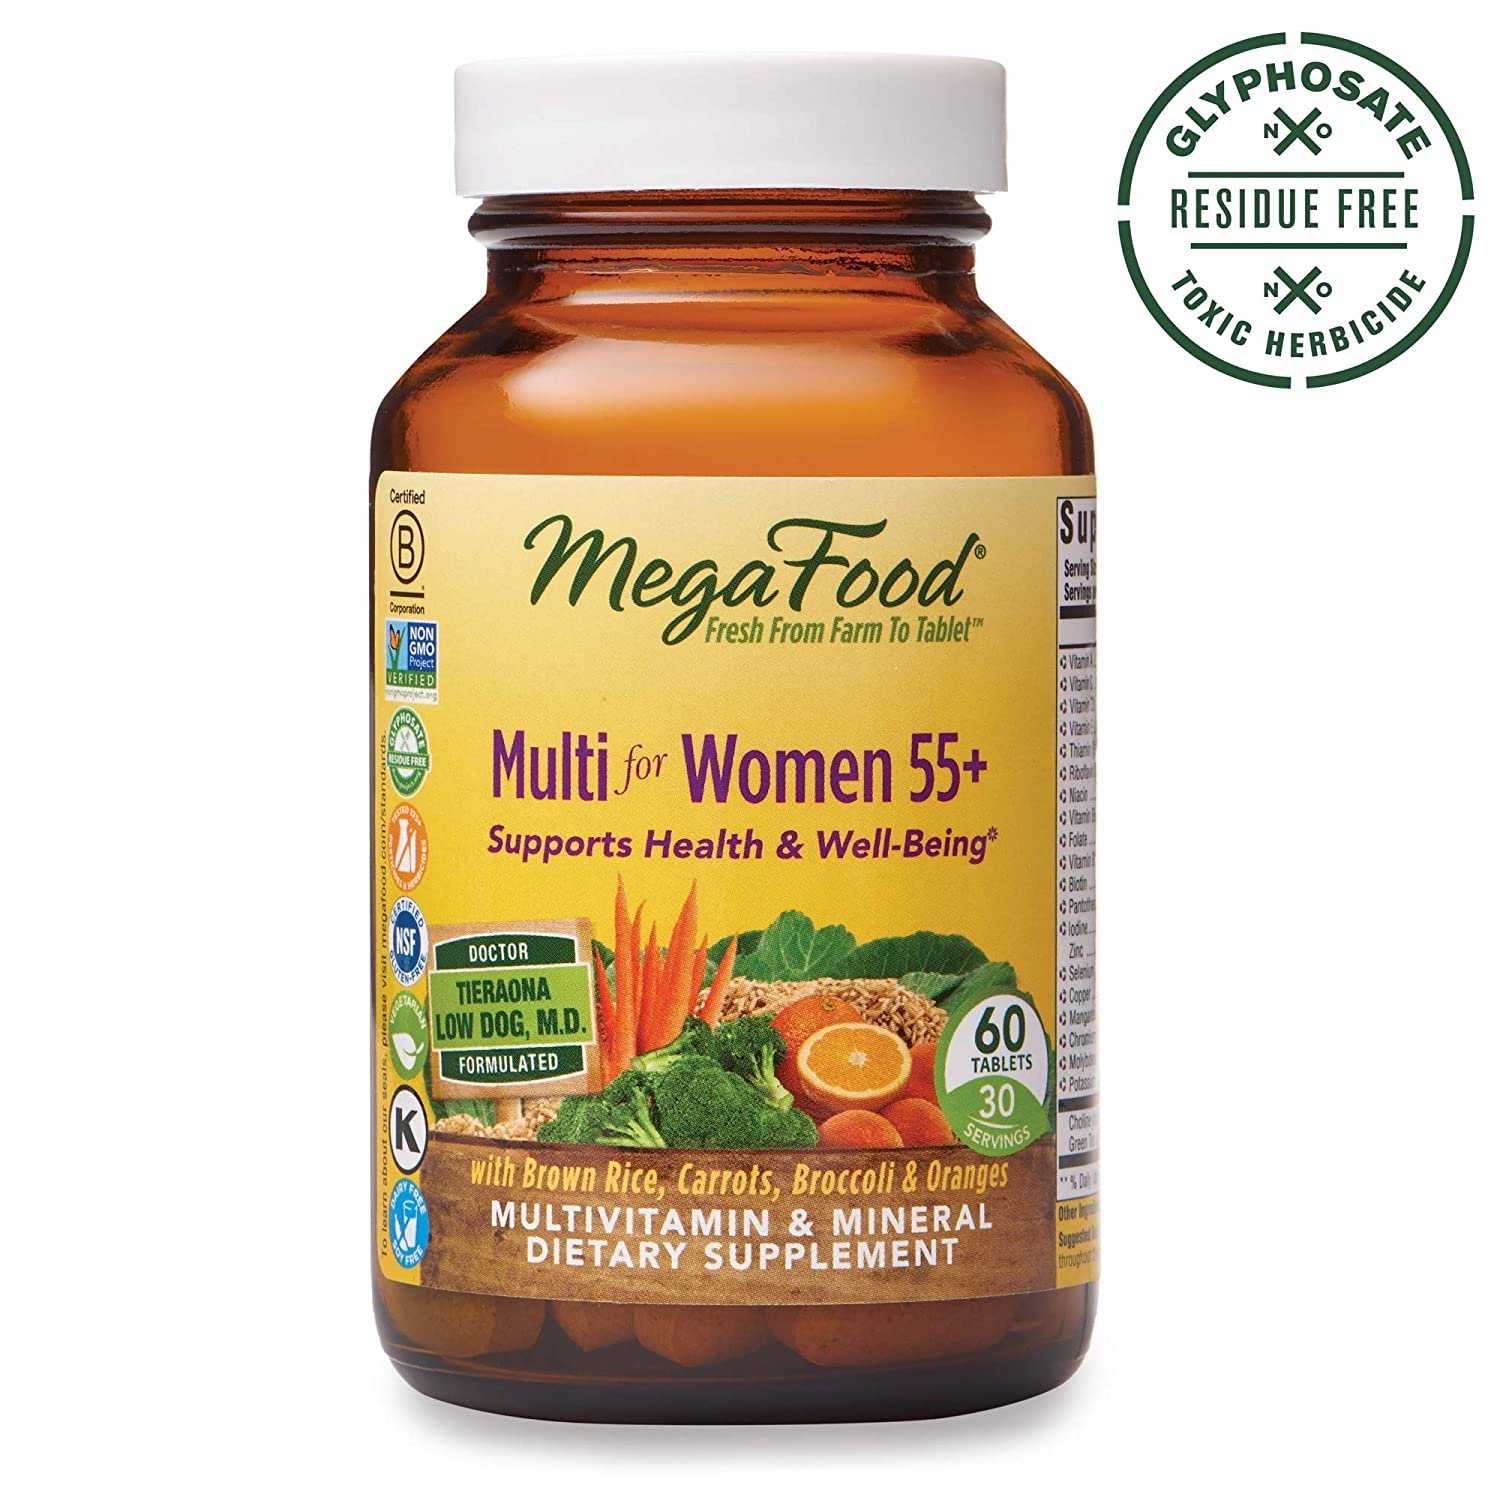 MegaFood, Multi for Women 55 , Supports Optimal Health and Wellbeing, Multivitamin and Mineral Dietary Supplement, Gluten Free, Vegetarian, 60 Tablets 30 Servings